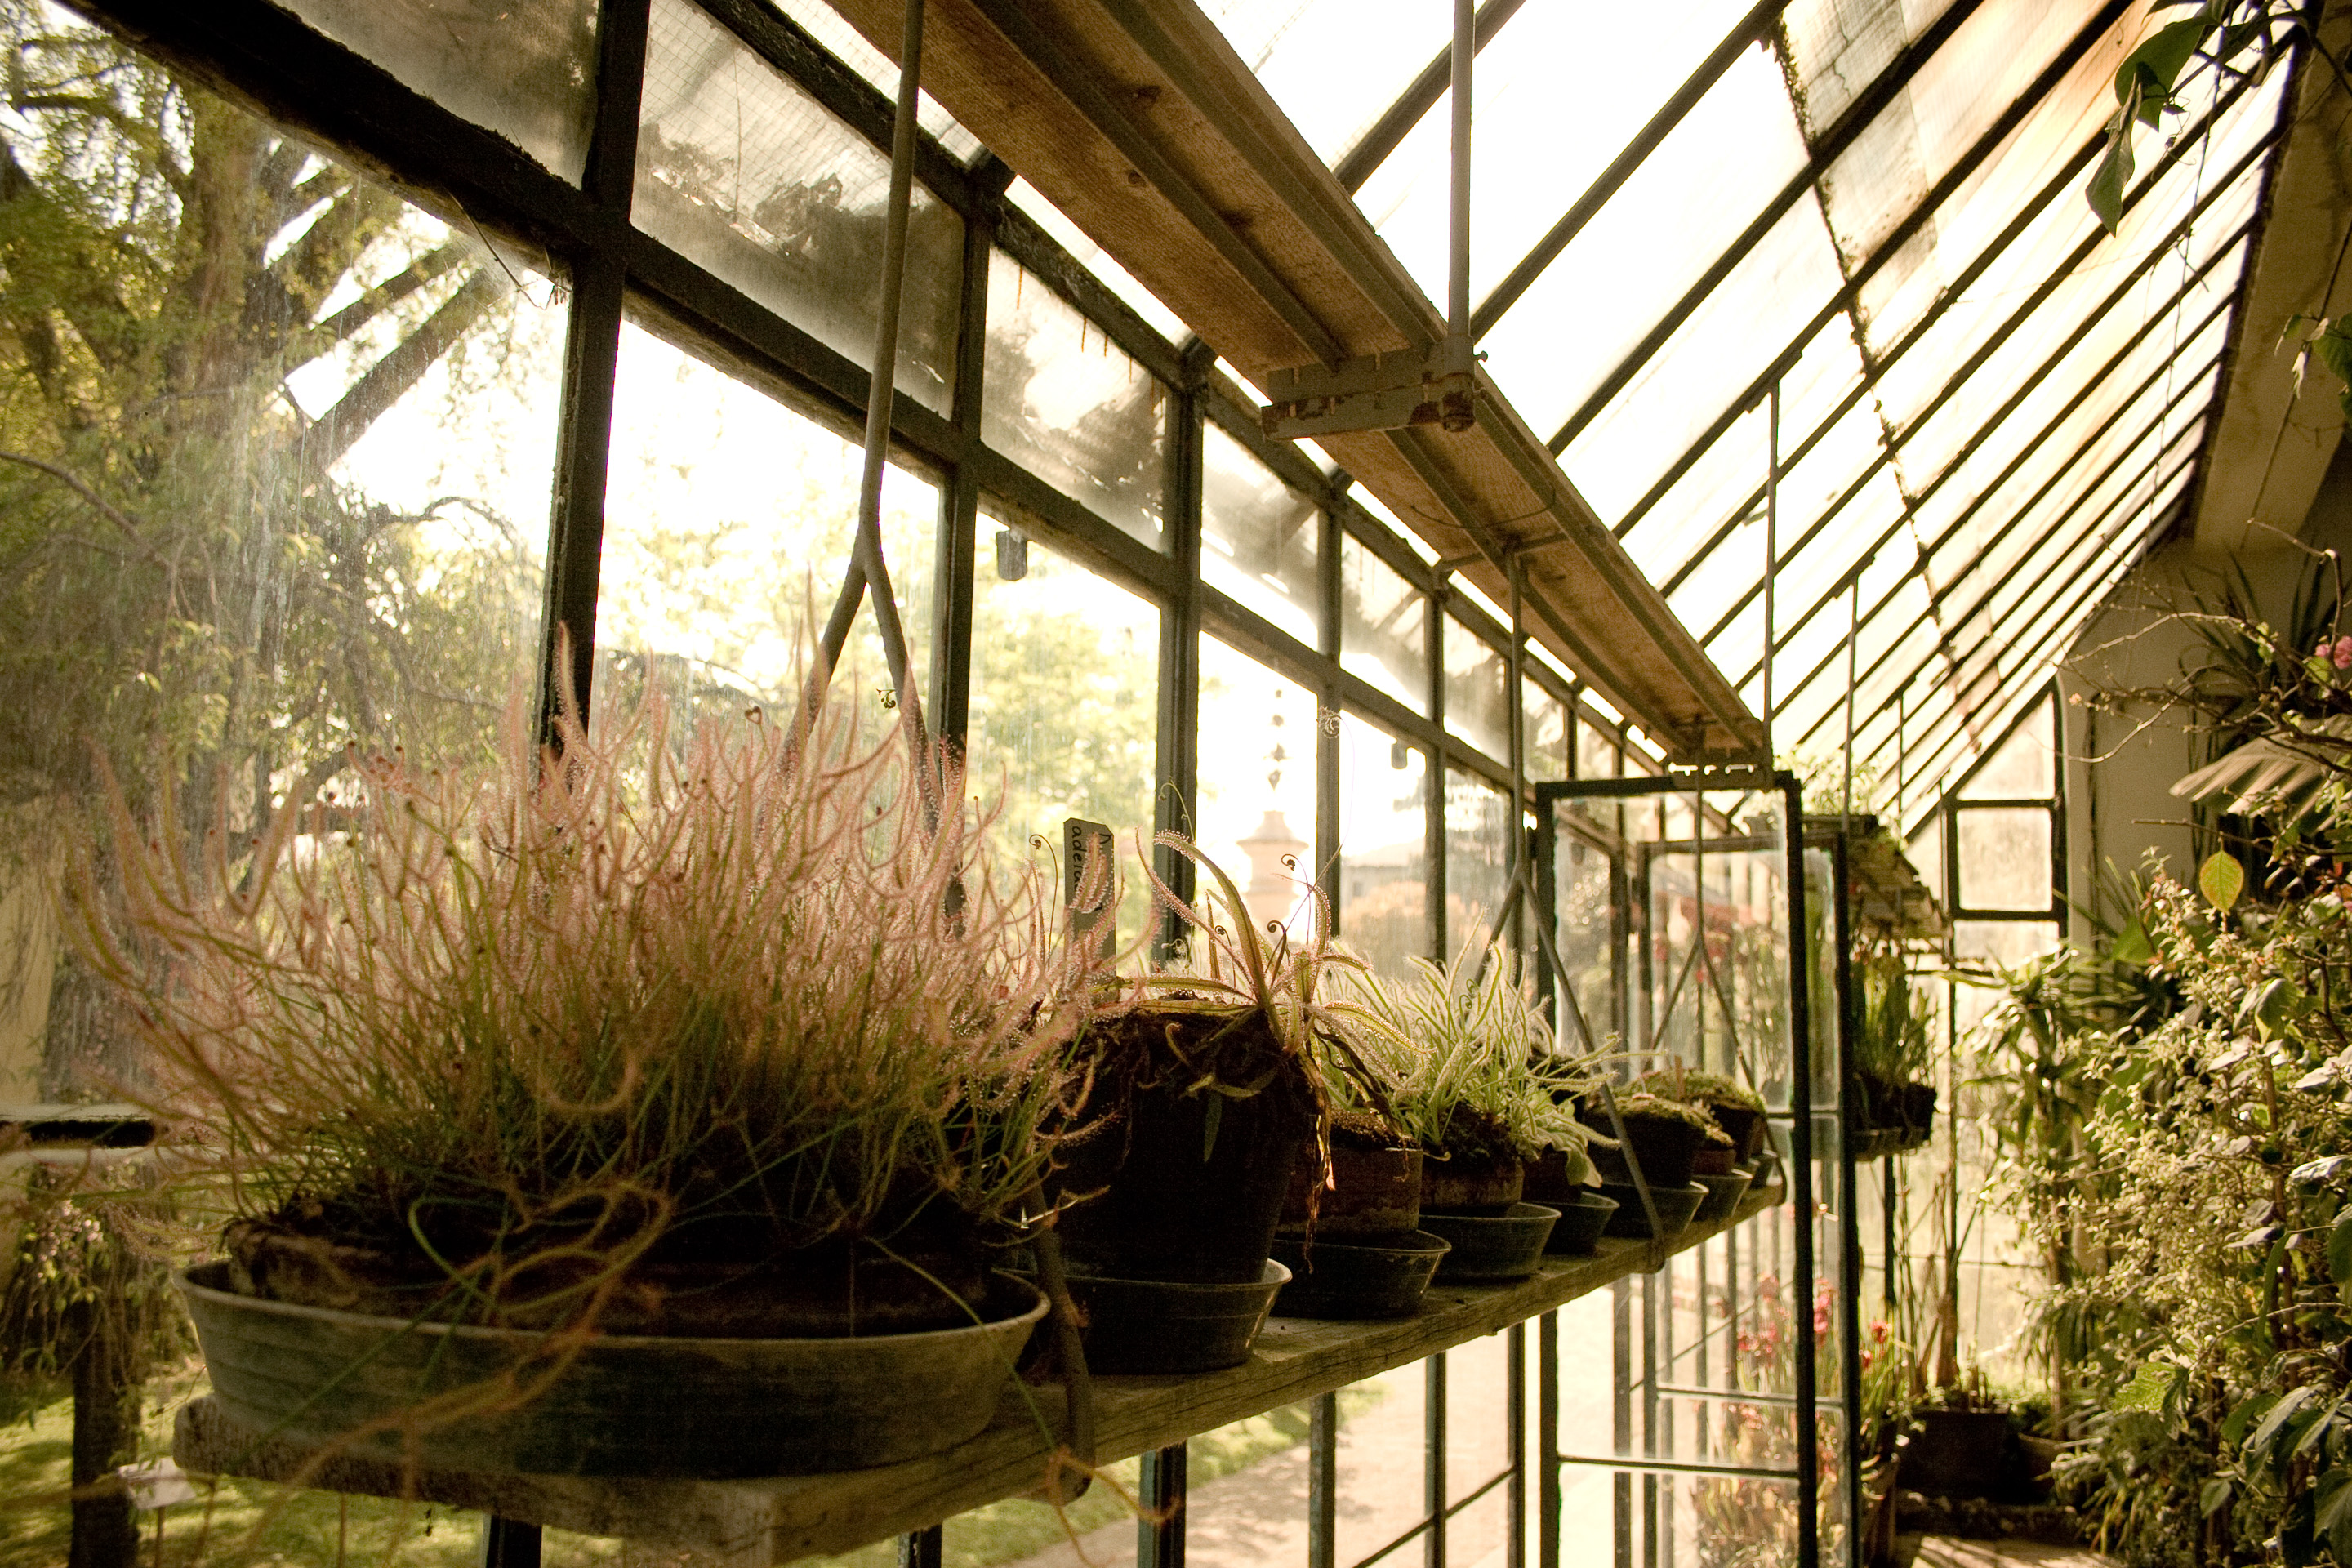 100 · Carnivorous plants greenhouse Click to view previous post